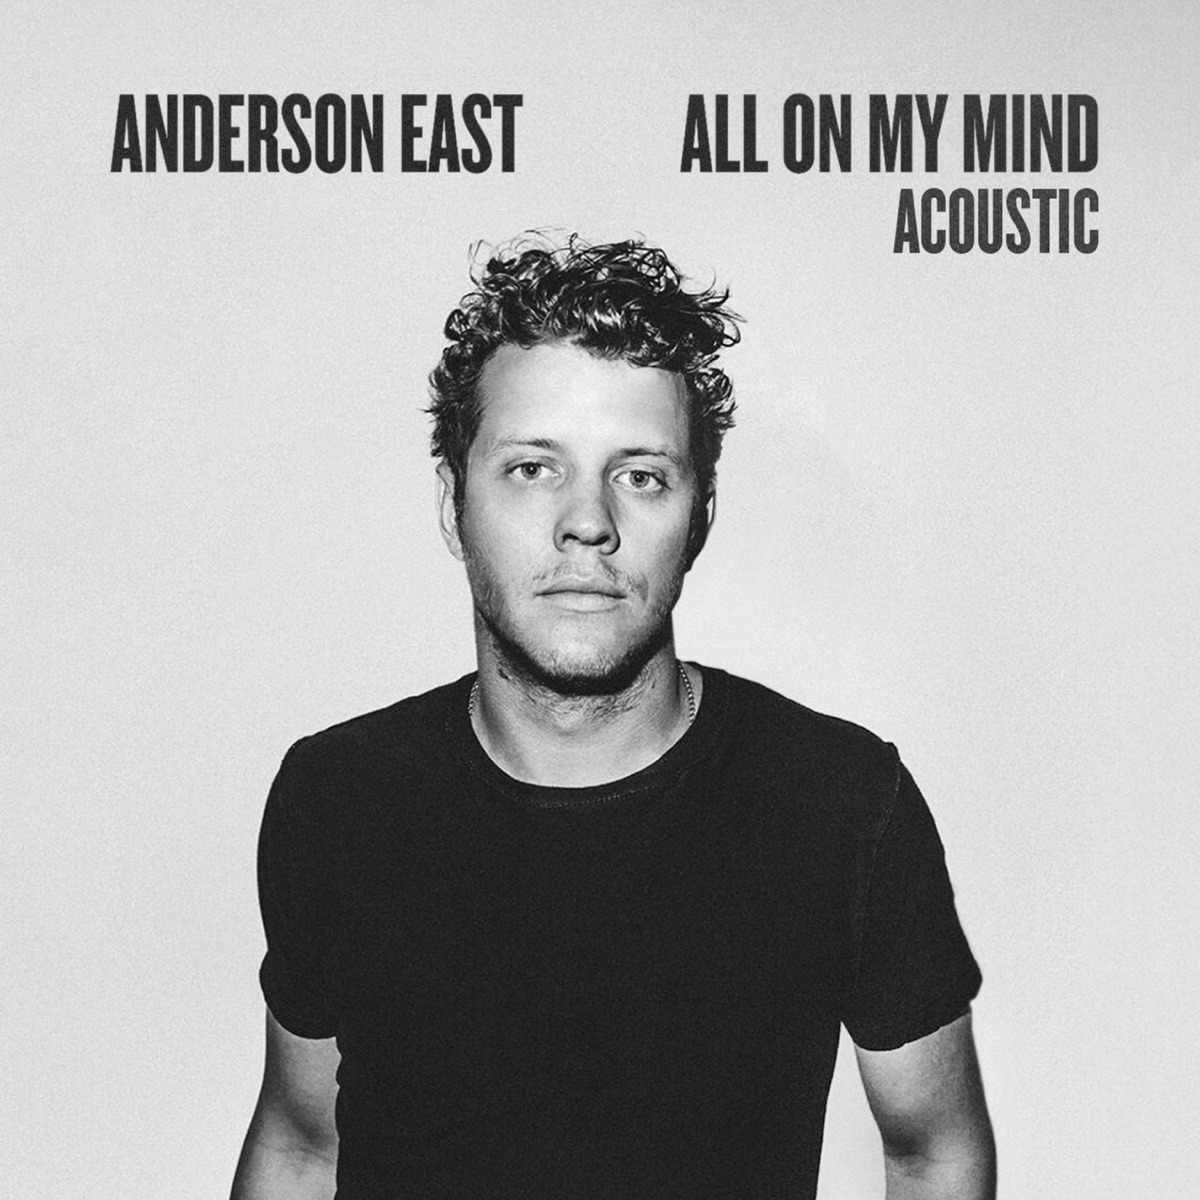 All On My Mind Acoustic - Single Anderson East CD cover